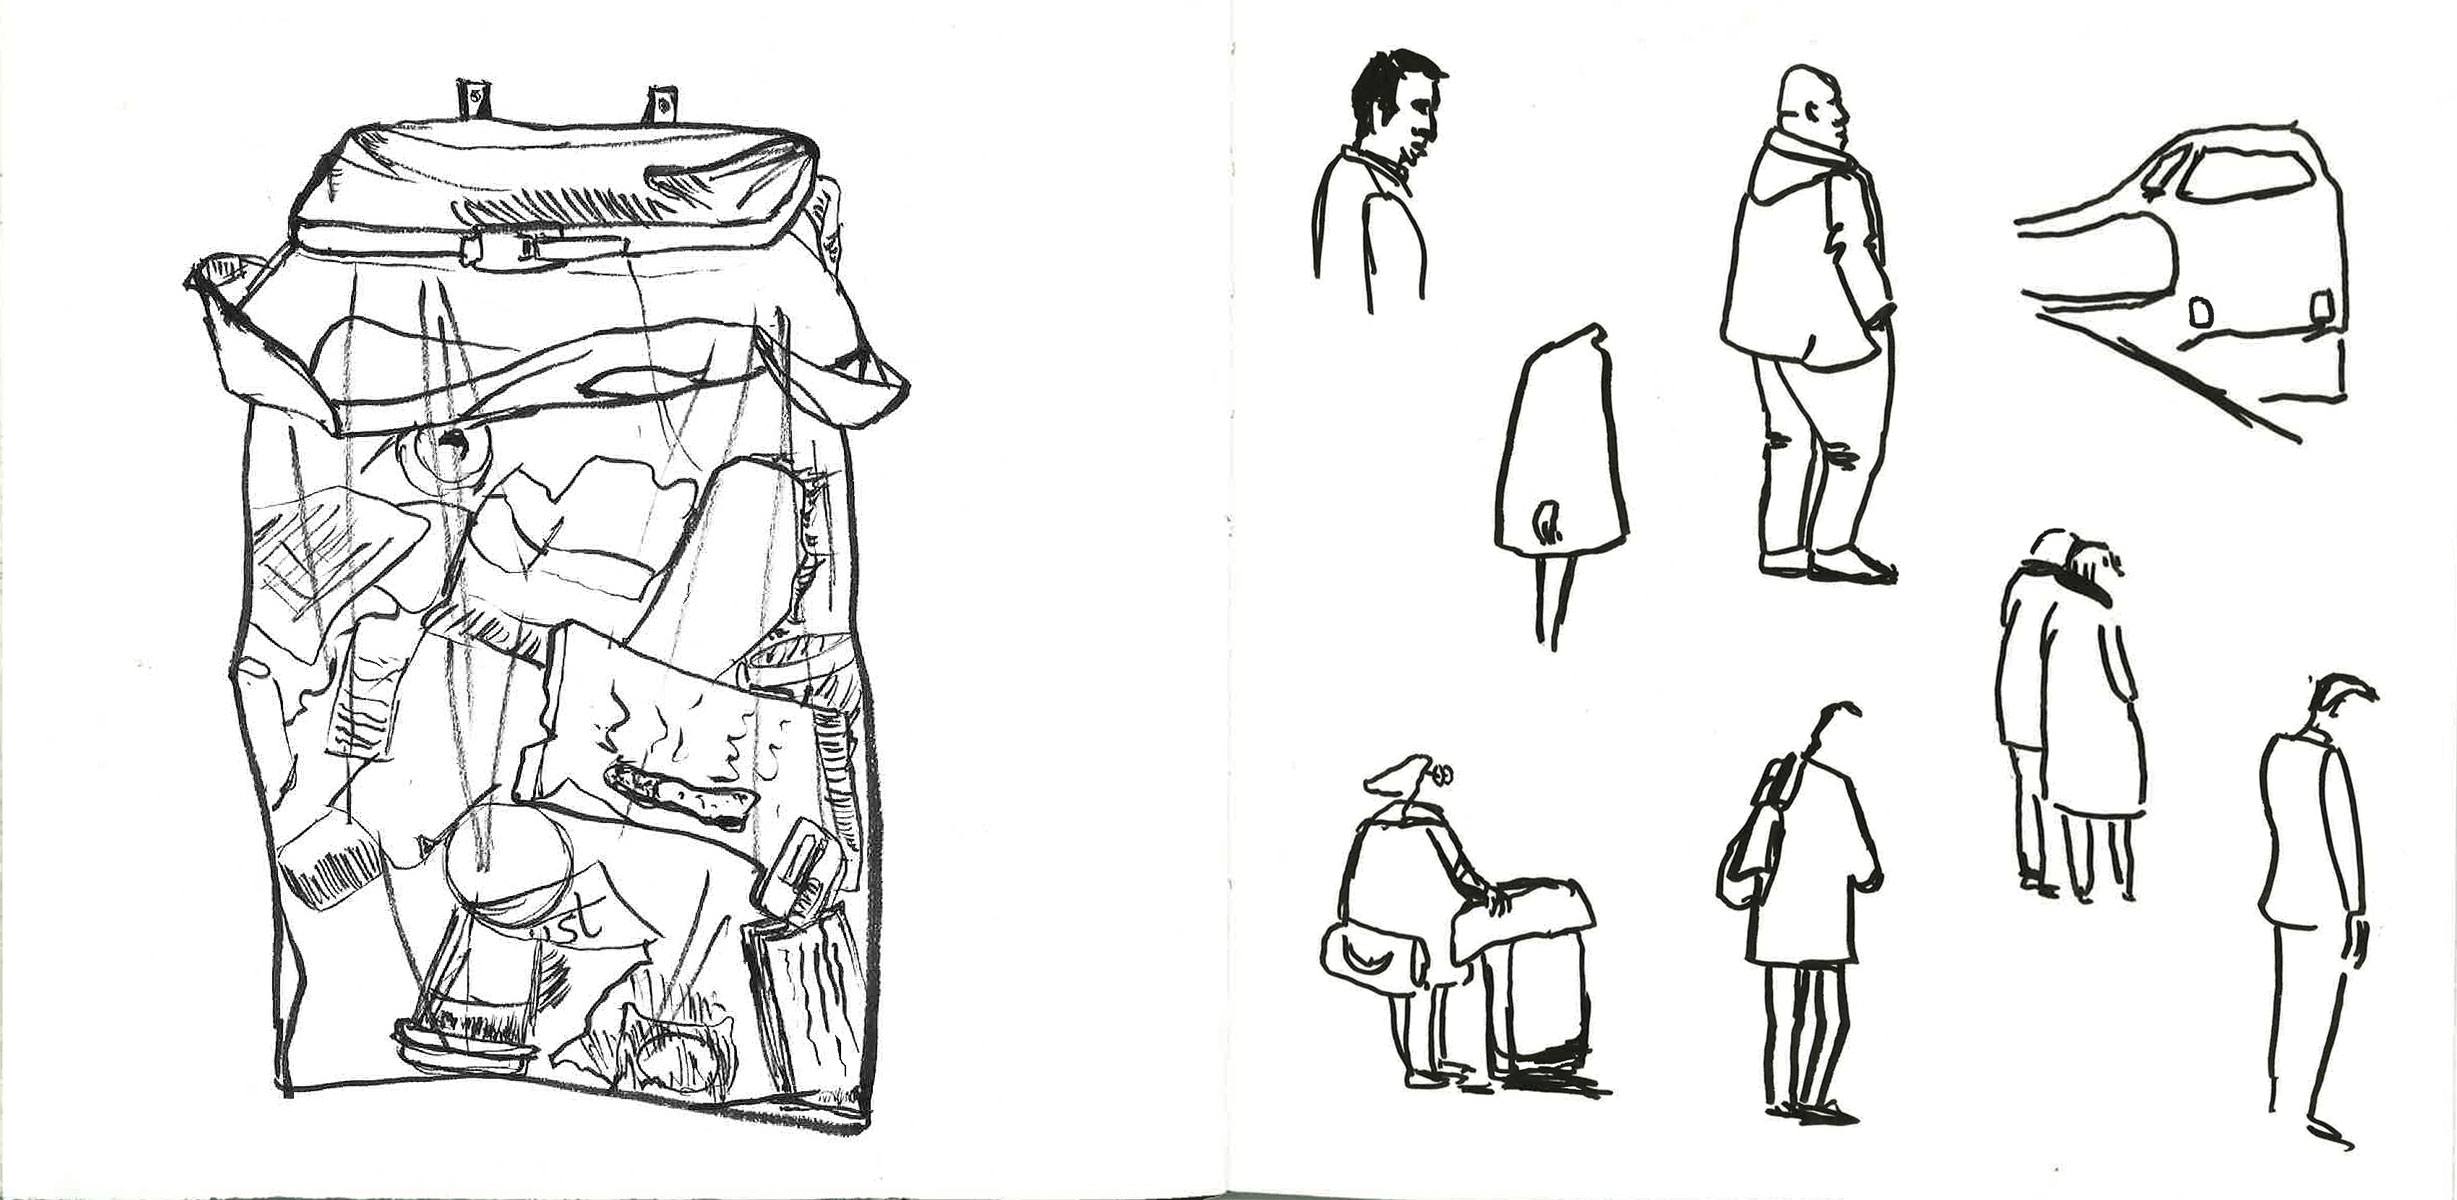 early sketch figures and trash can at deventer station by ellen vesters illustrator from utrecht